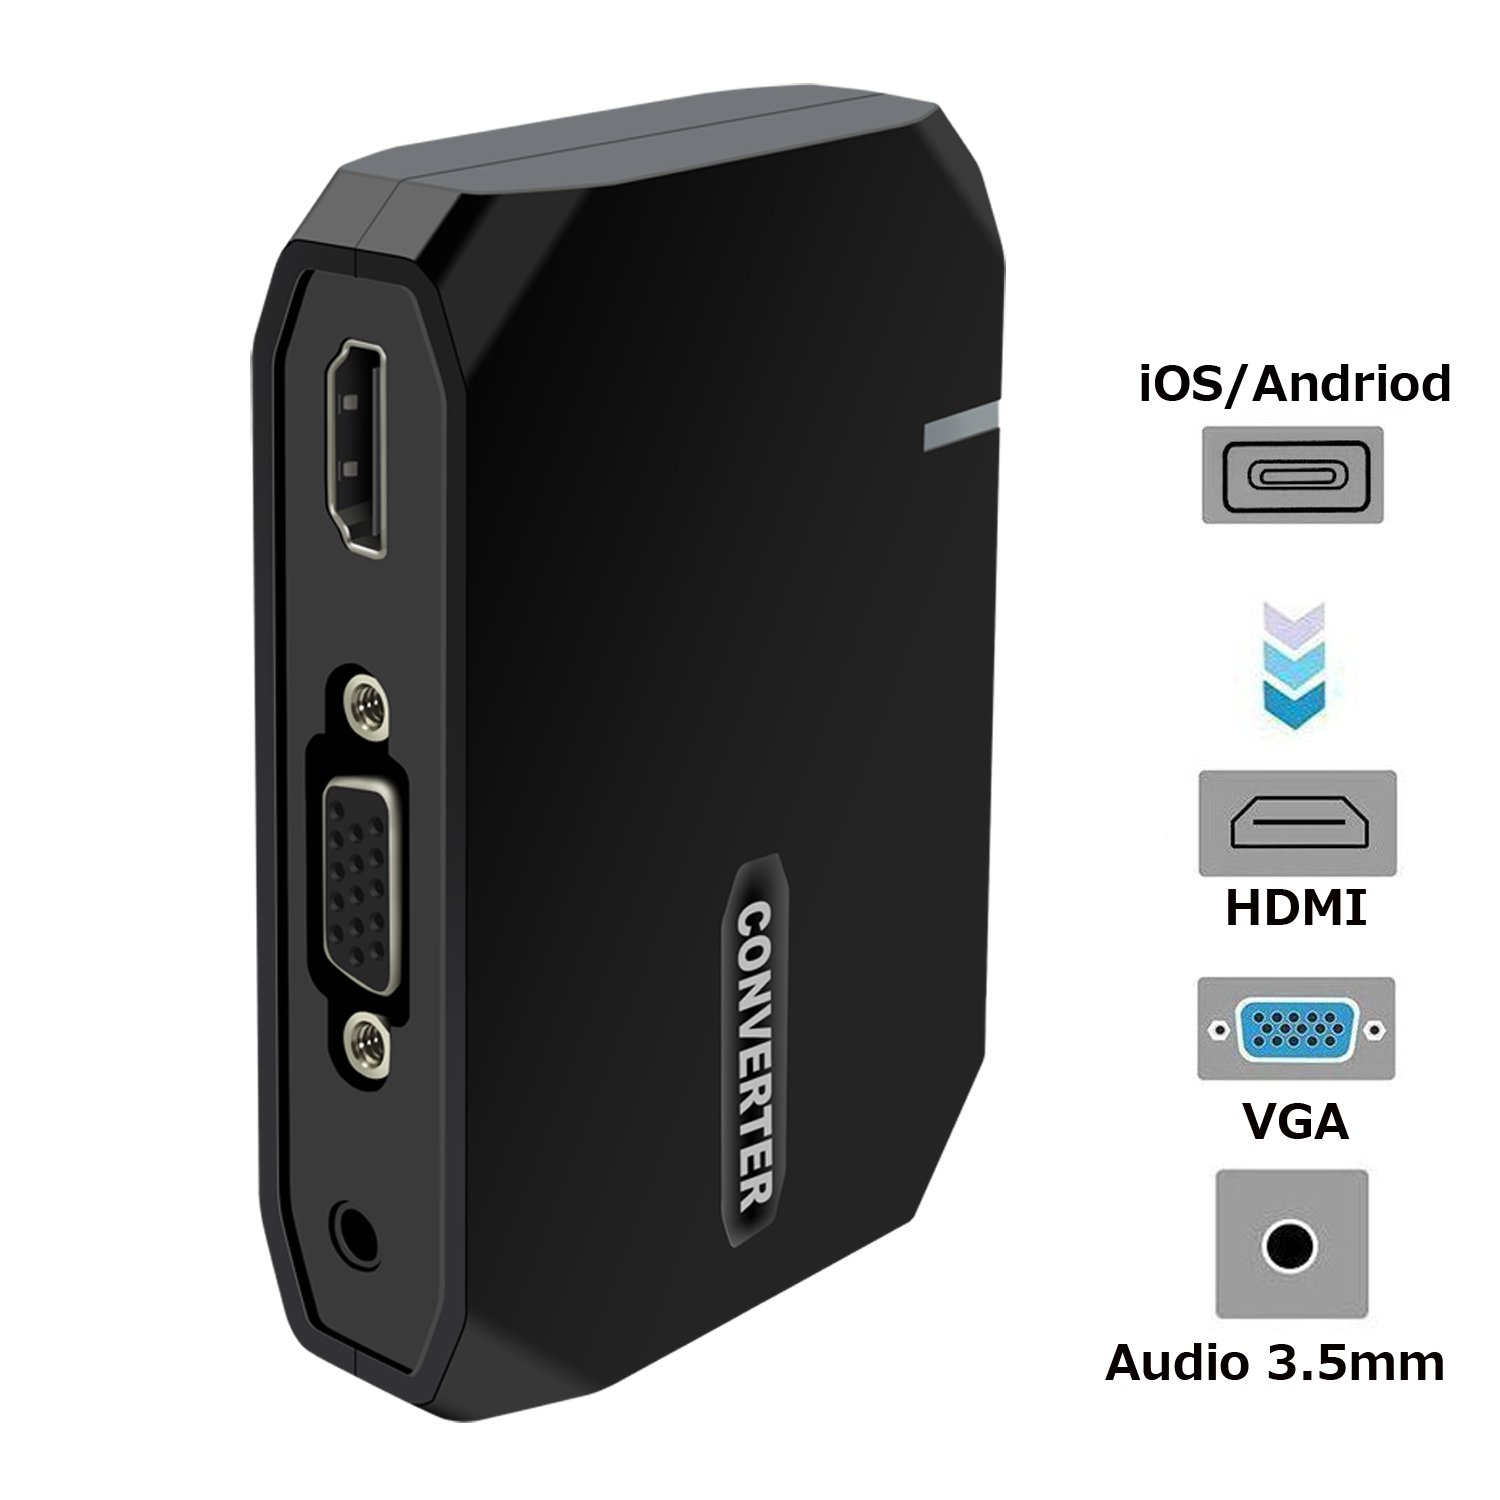 1AsAll 3 in 1 VGA Audio Video Multiport Digital AV Adapter, HDMI+VGA Display Dongle 1080P Sharing HD Video to TV/Projector/Monitor from iOS Devices and Android Cellphone- Black